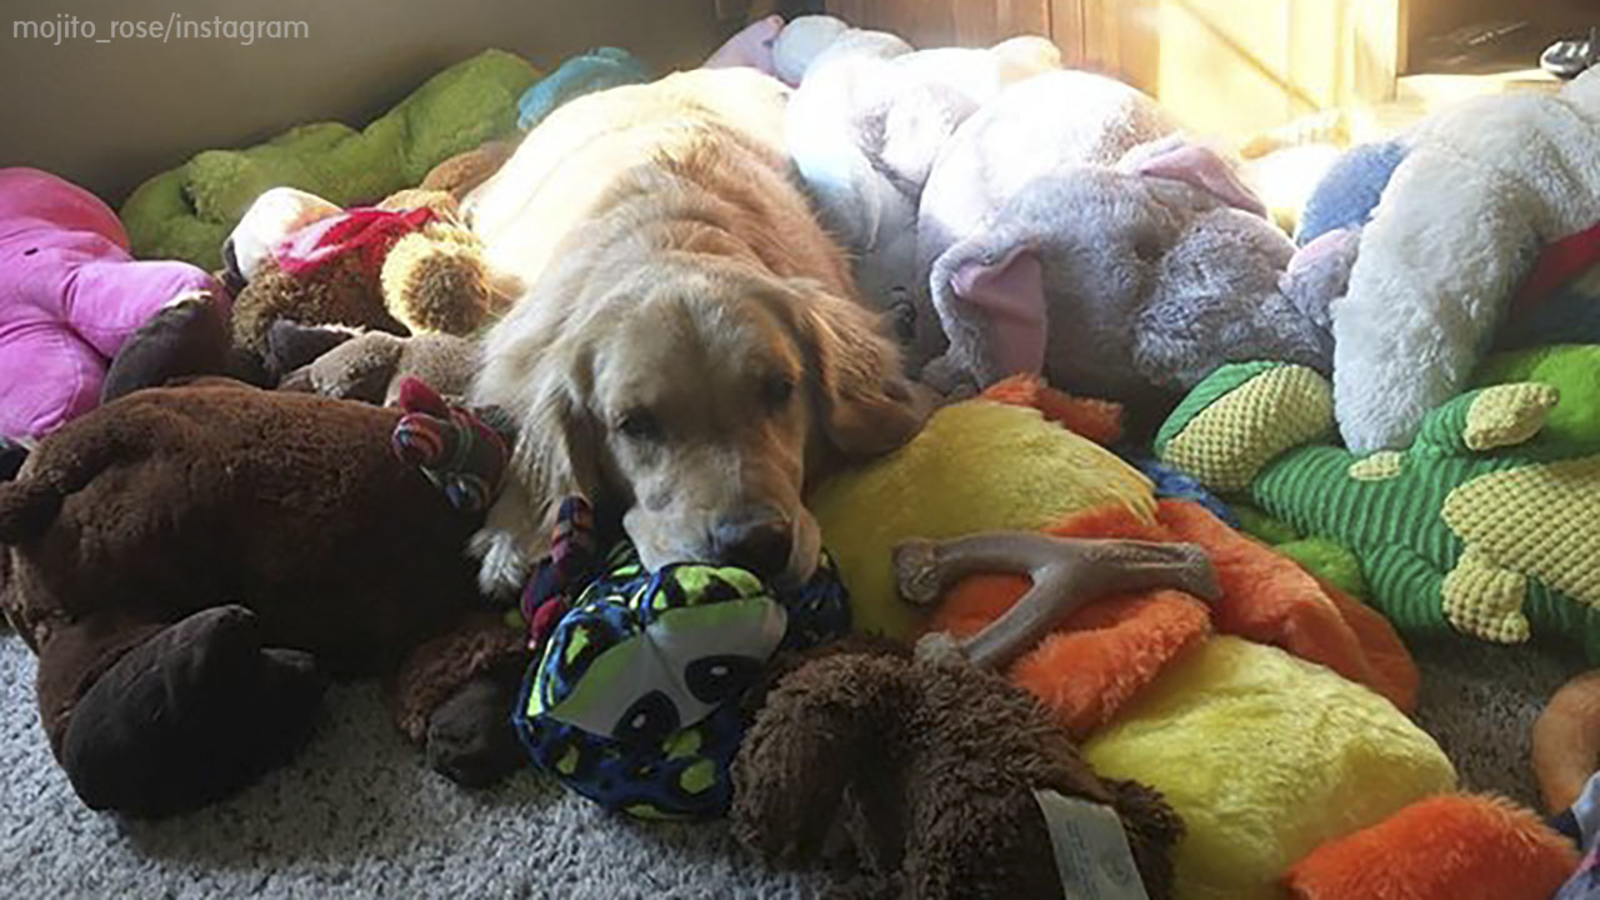 This golden retriever has gone viral for her very unusual bedtime routine